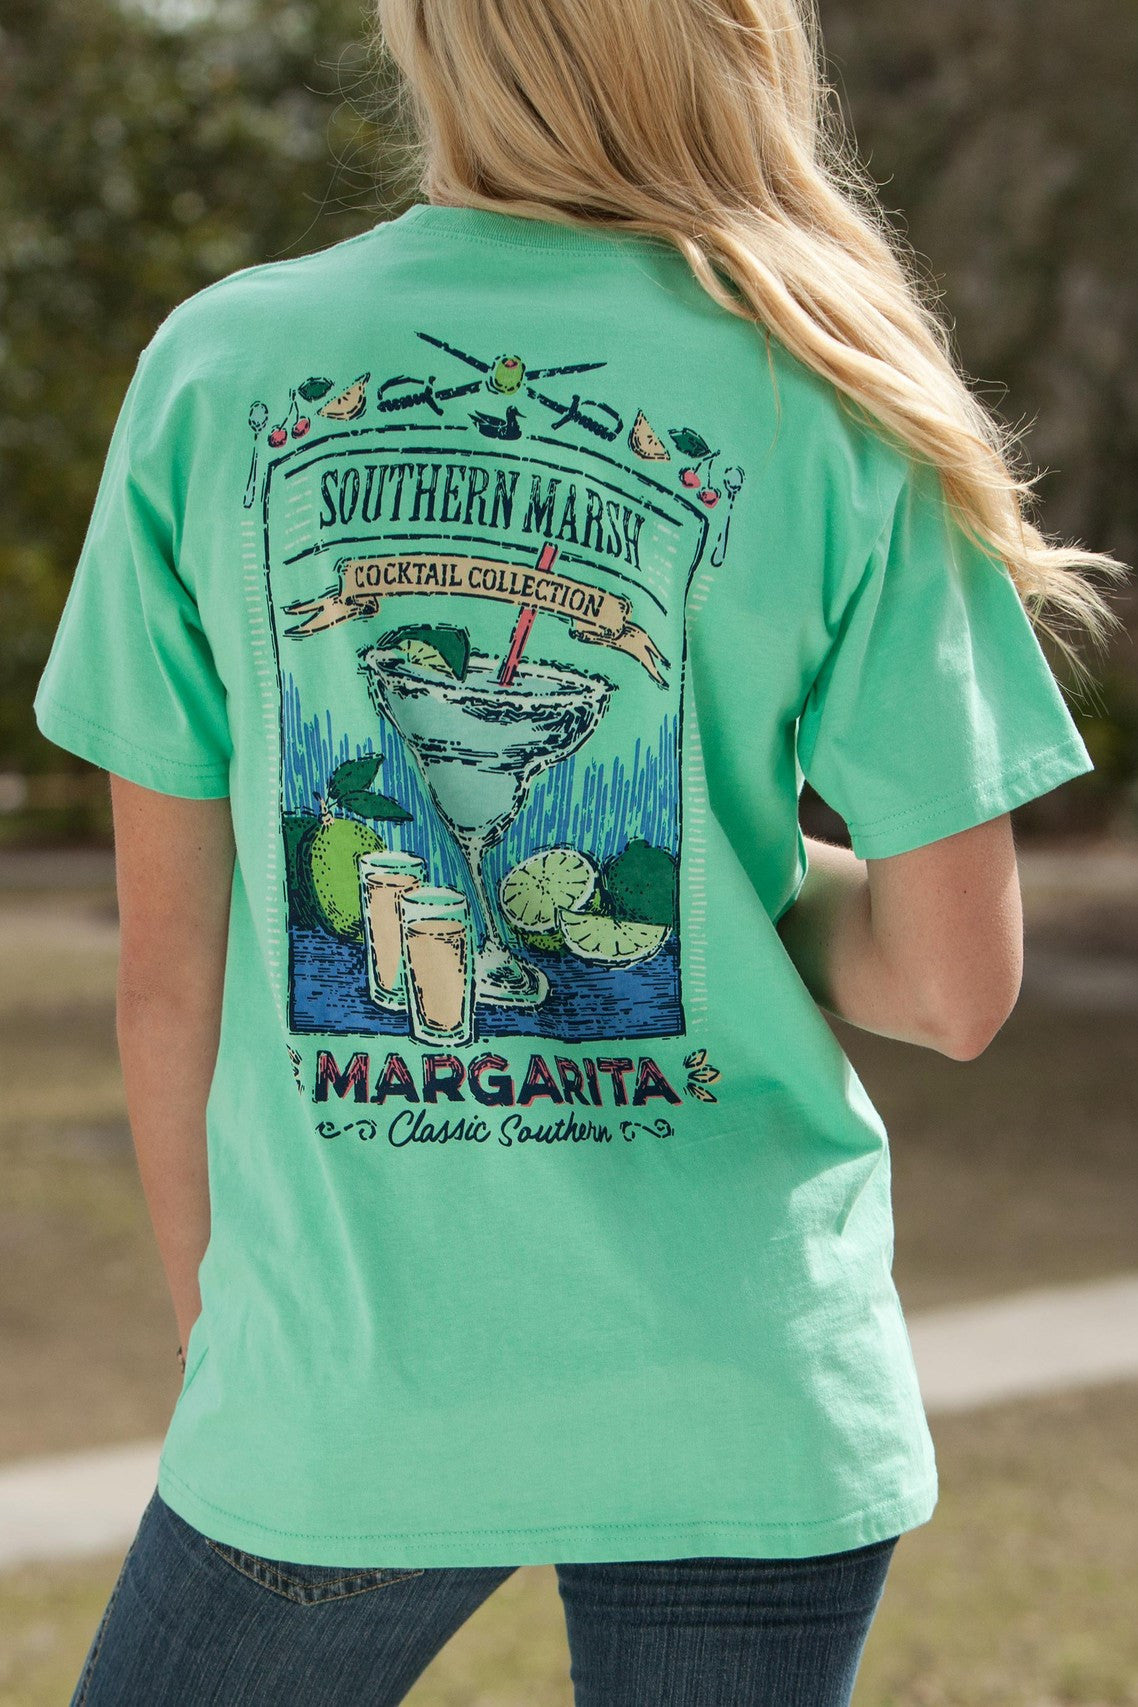 Southern Marsh: Cocktail Collection - Margarita